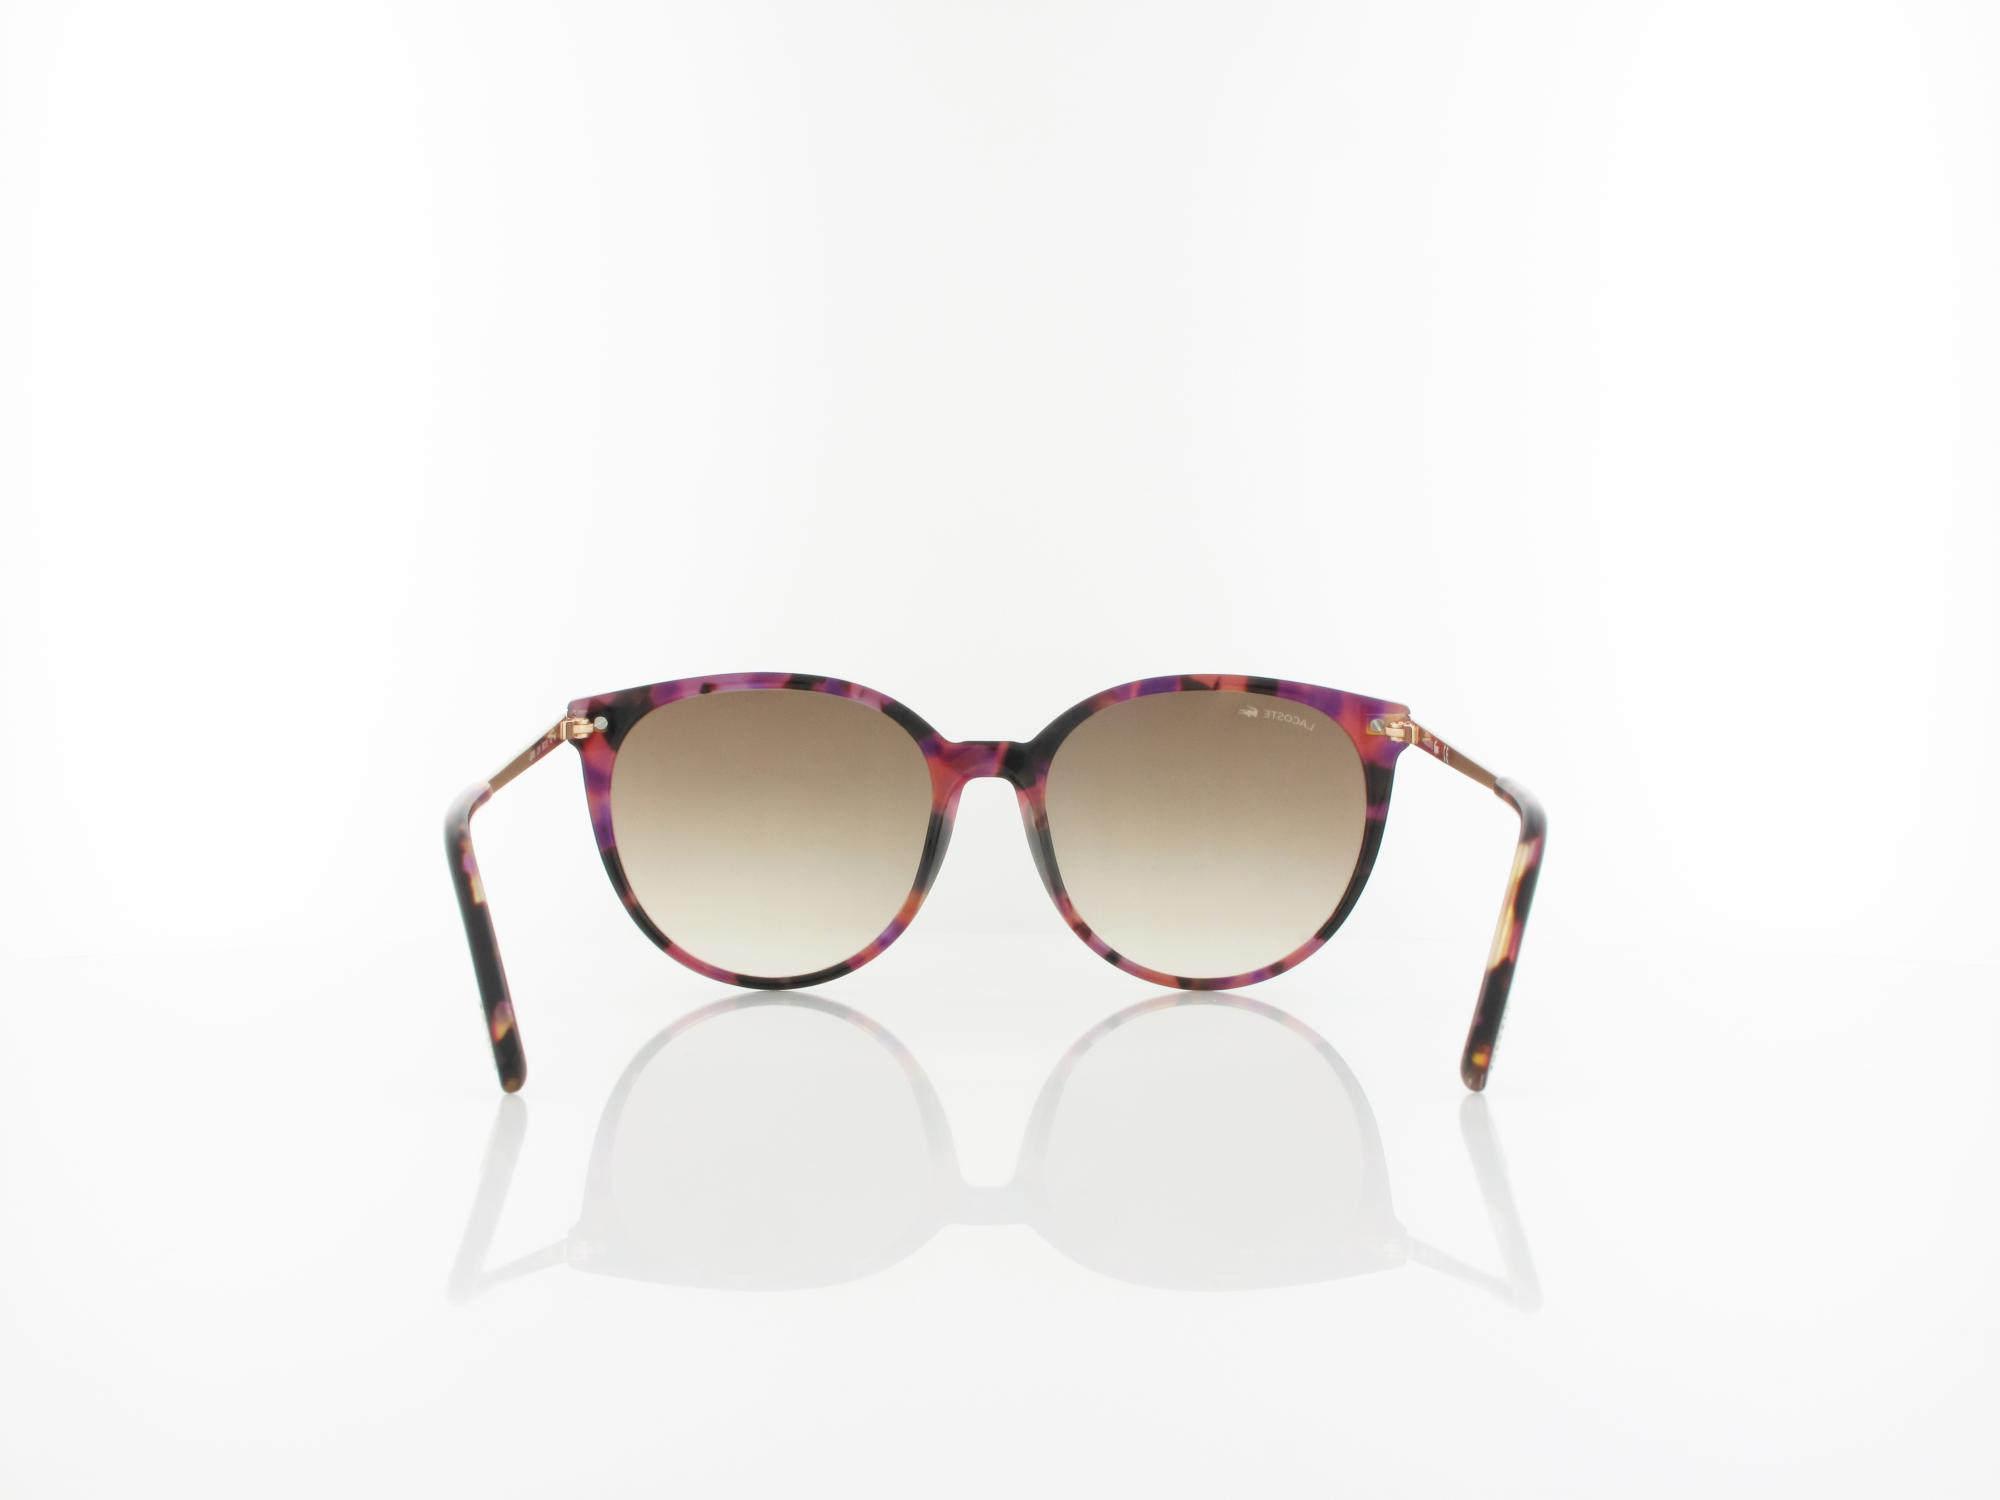 Lacoste | L928S 219 56 | purple havana / gradient brown